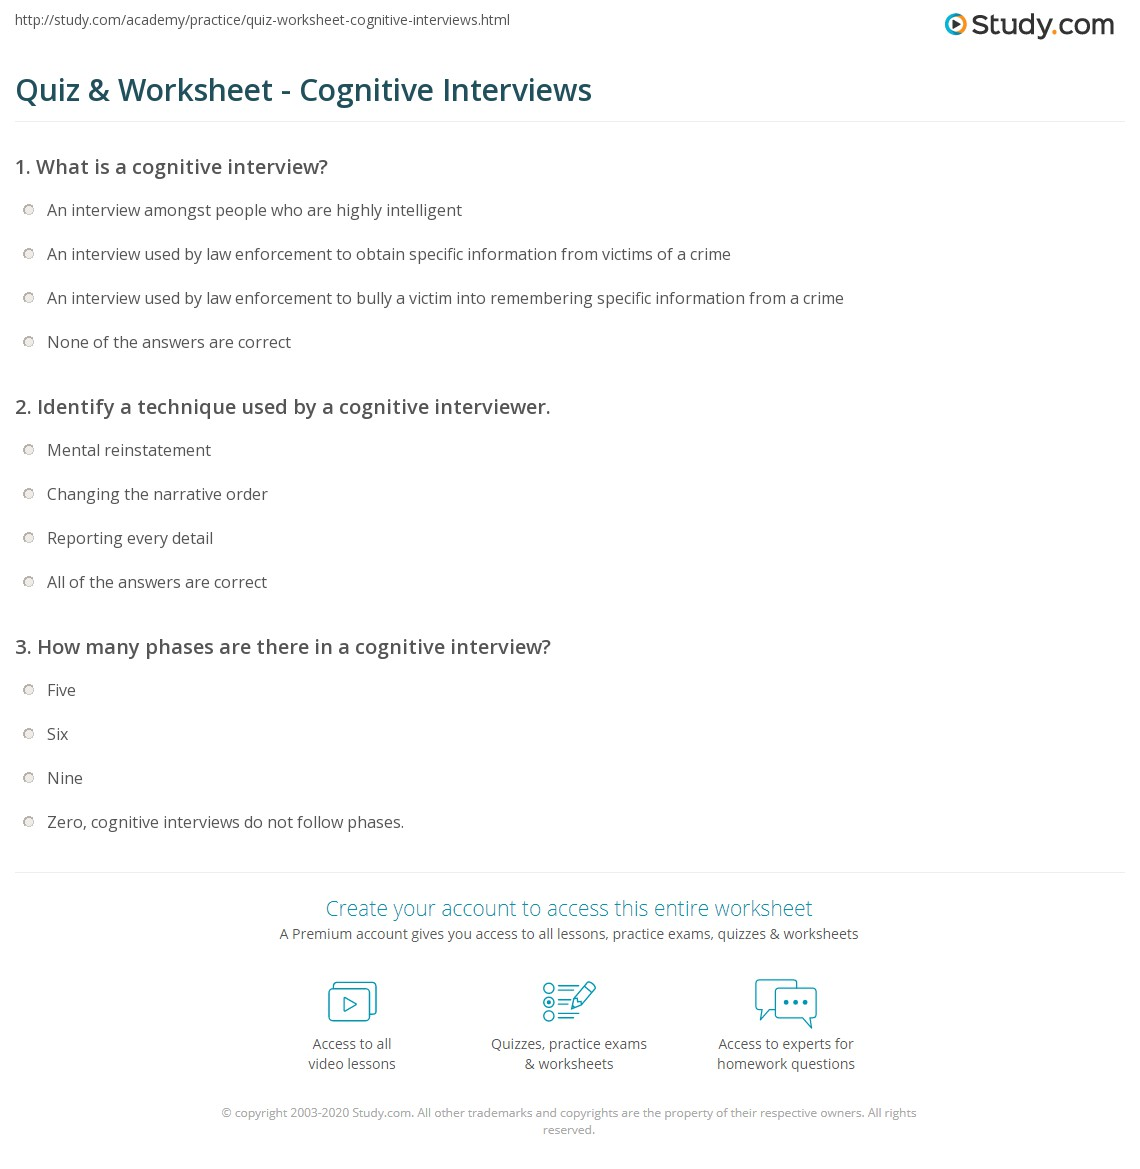 quiz worksheet cognitive interviews com print what is a cognitive interview questions techniques evaluation worksheet